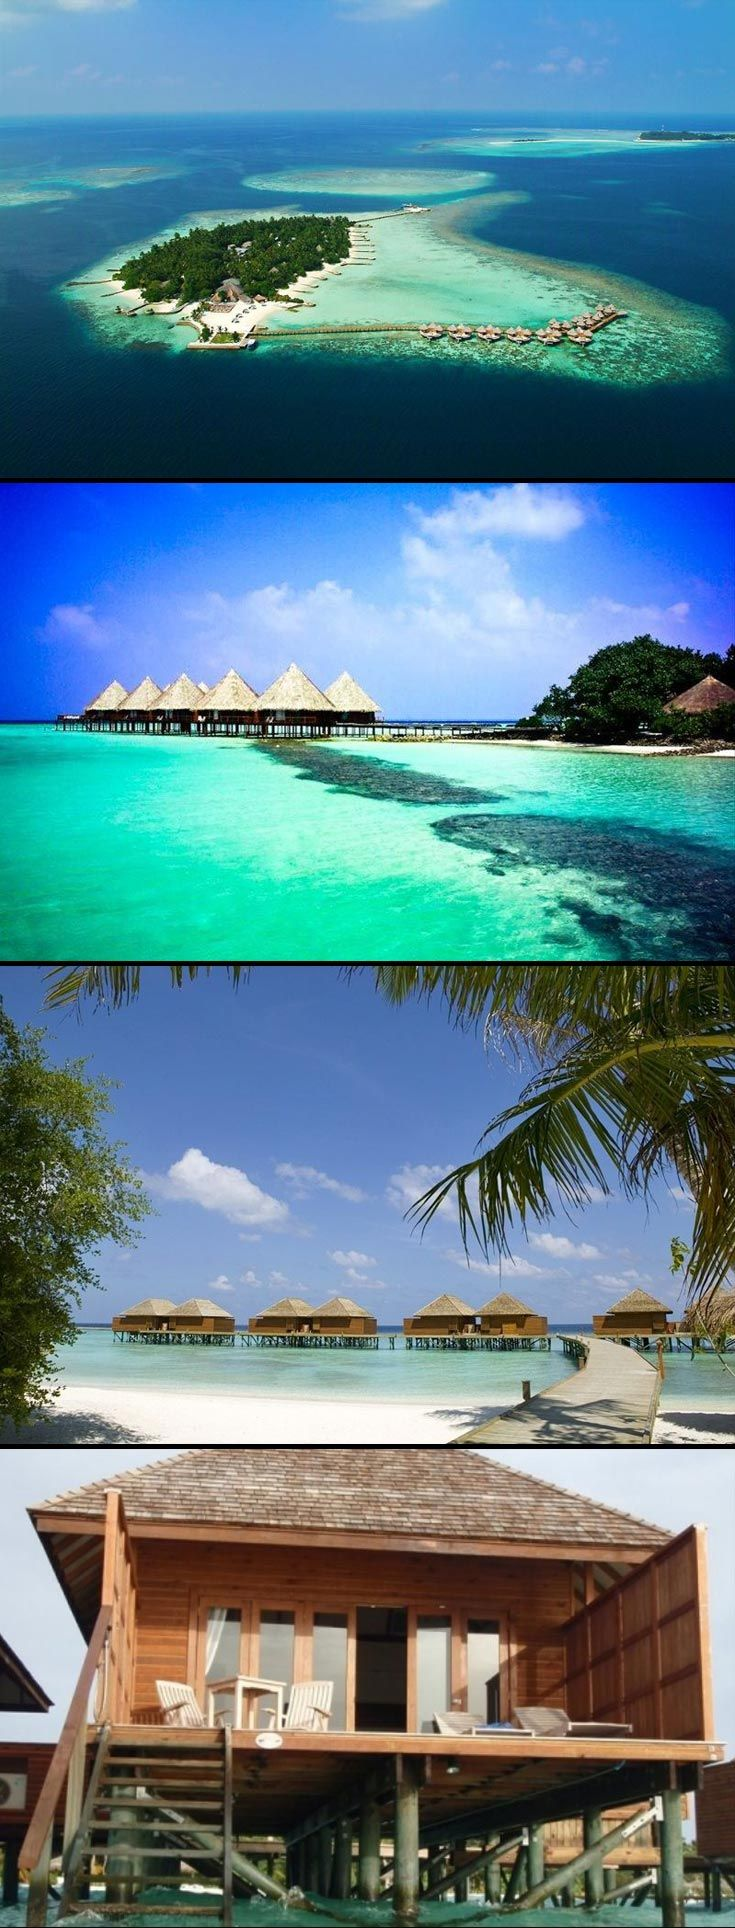 Veligandu Island Resort and Spa going in 4 weeks...I can't wait